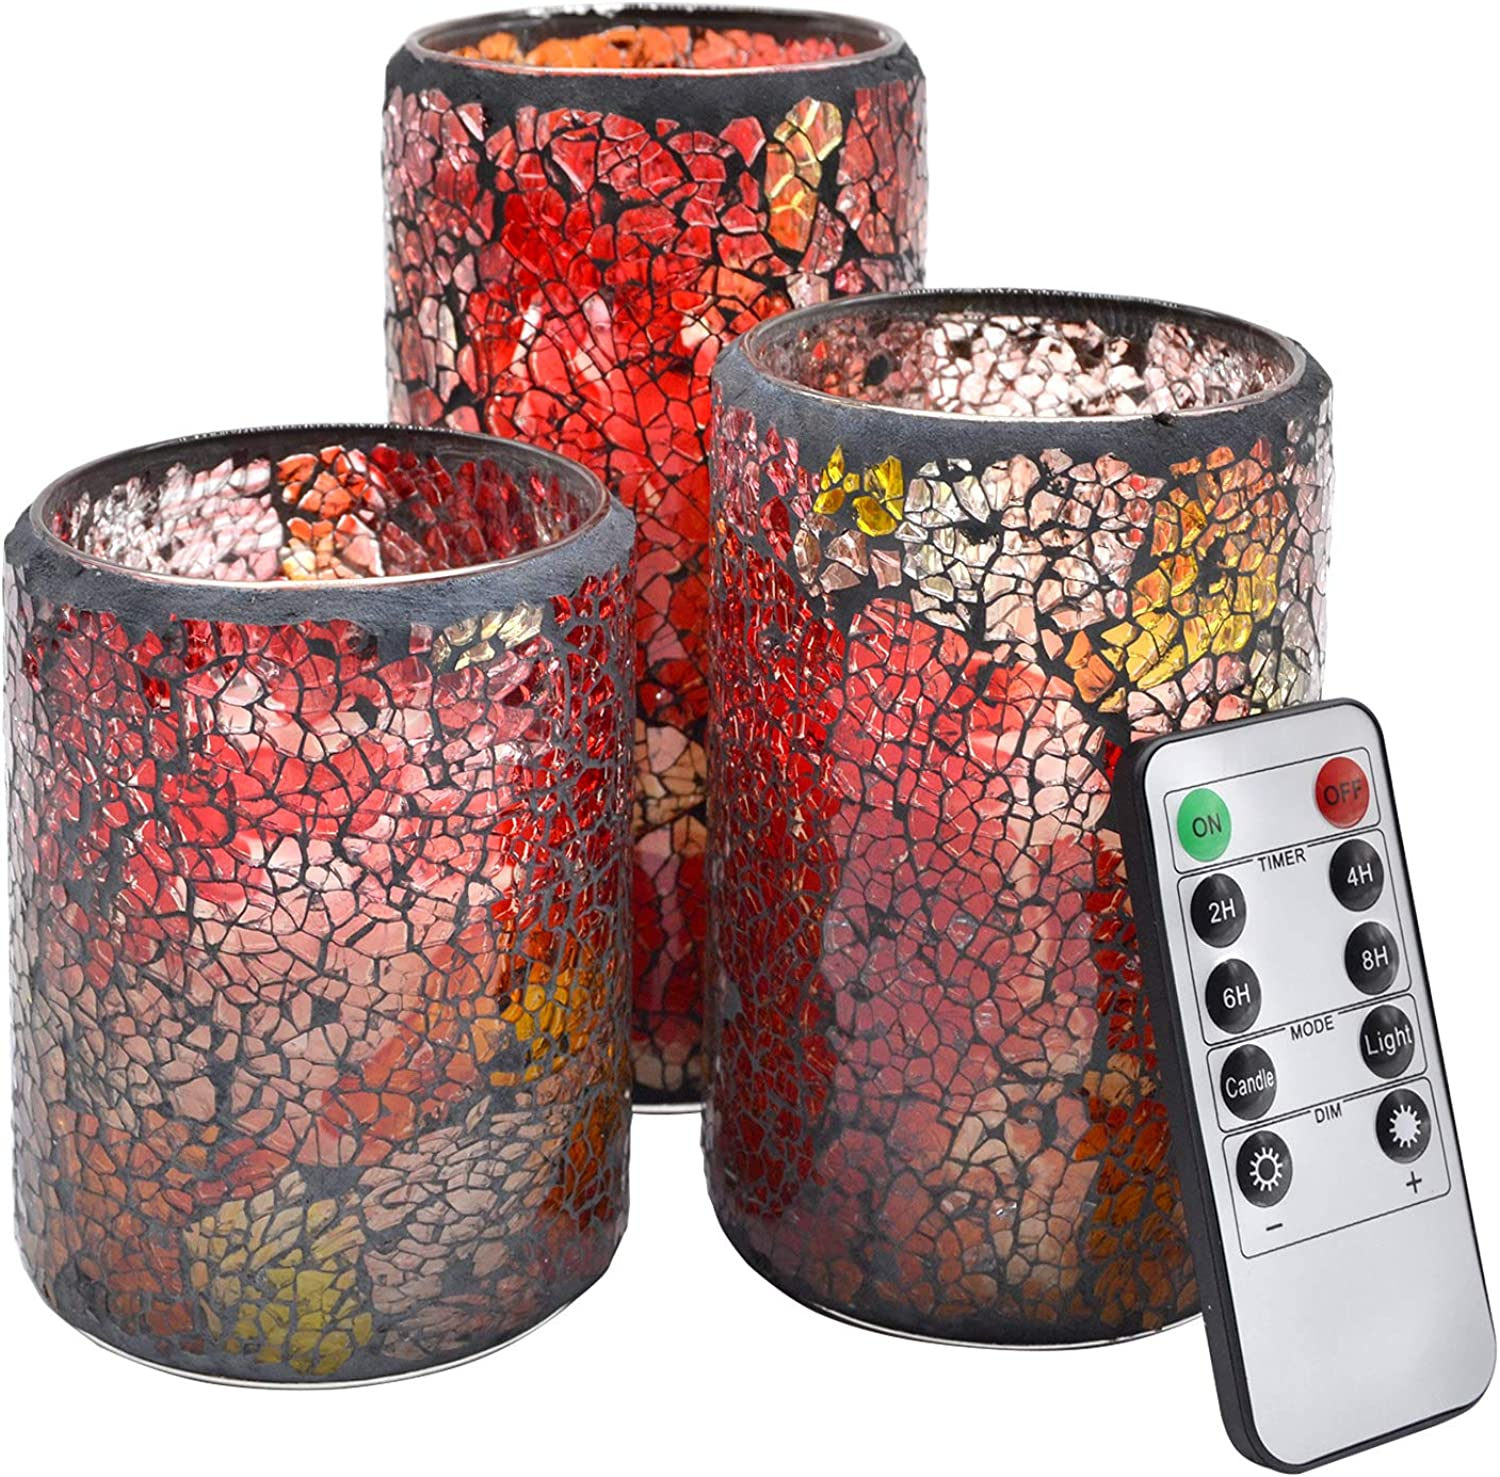 NIGHTKEY LED Mosaic Glass 3D Dancing Flame Pillar Real Wax Novelty Candle with 10-Key Control Remote and 2 4 6 8H Timer, Vanilla Scented, Pack of 3 (3 X 4 5 6 )